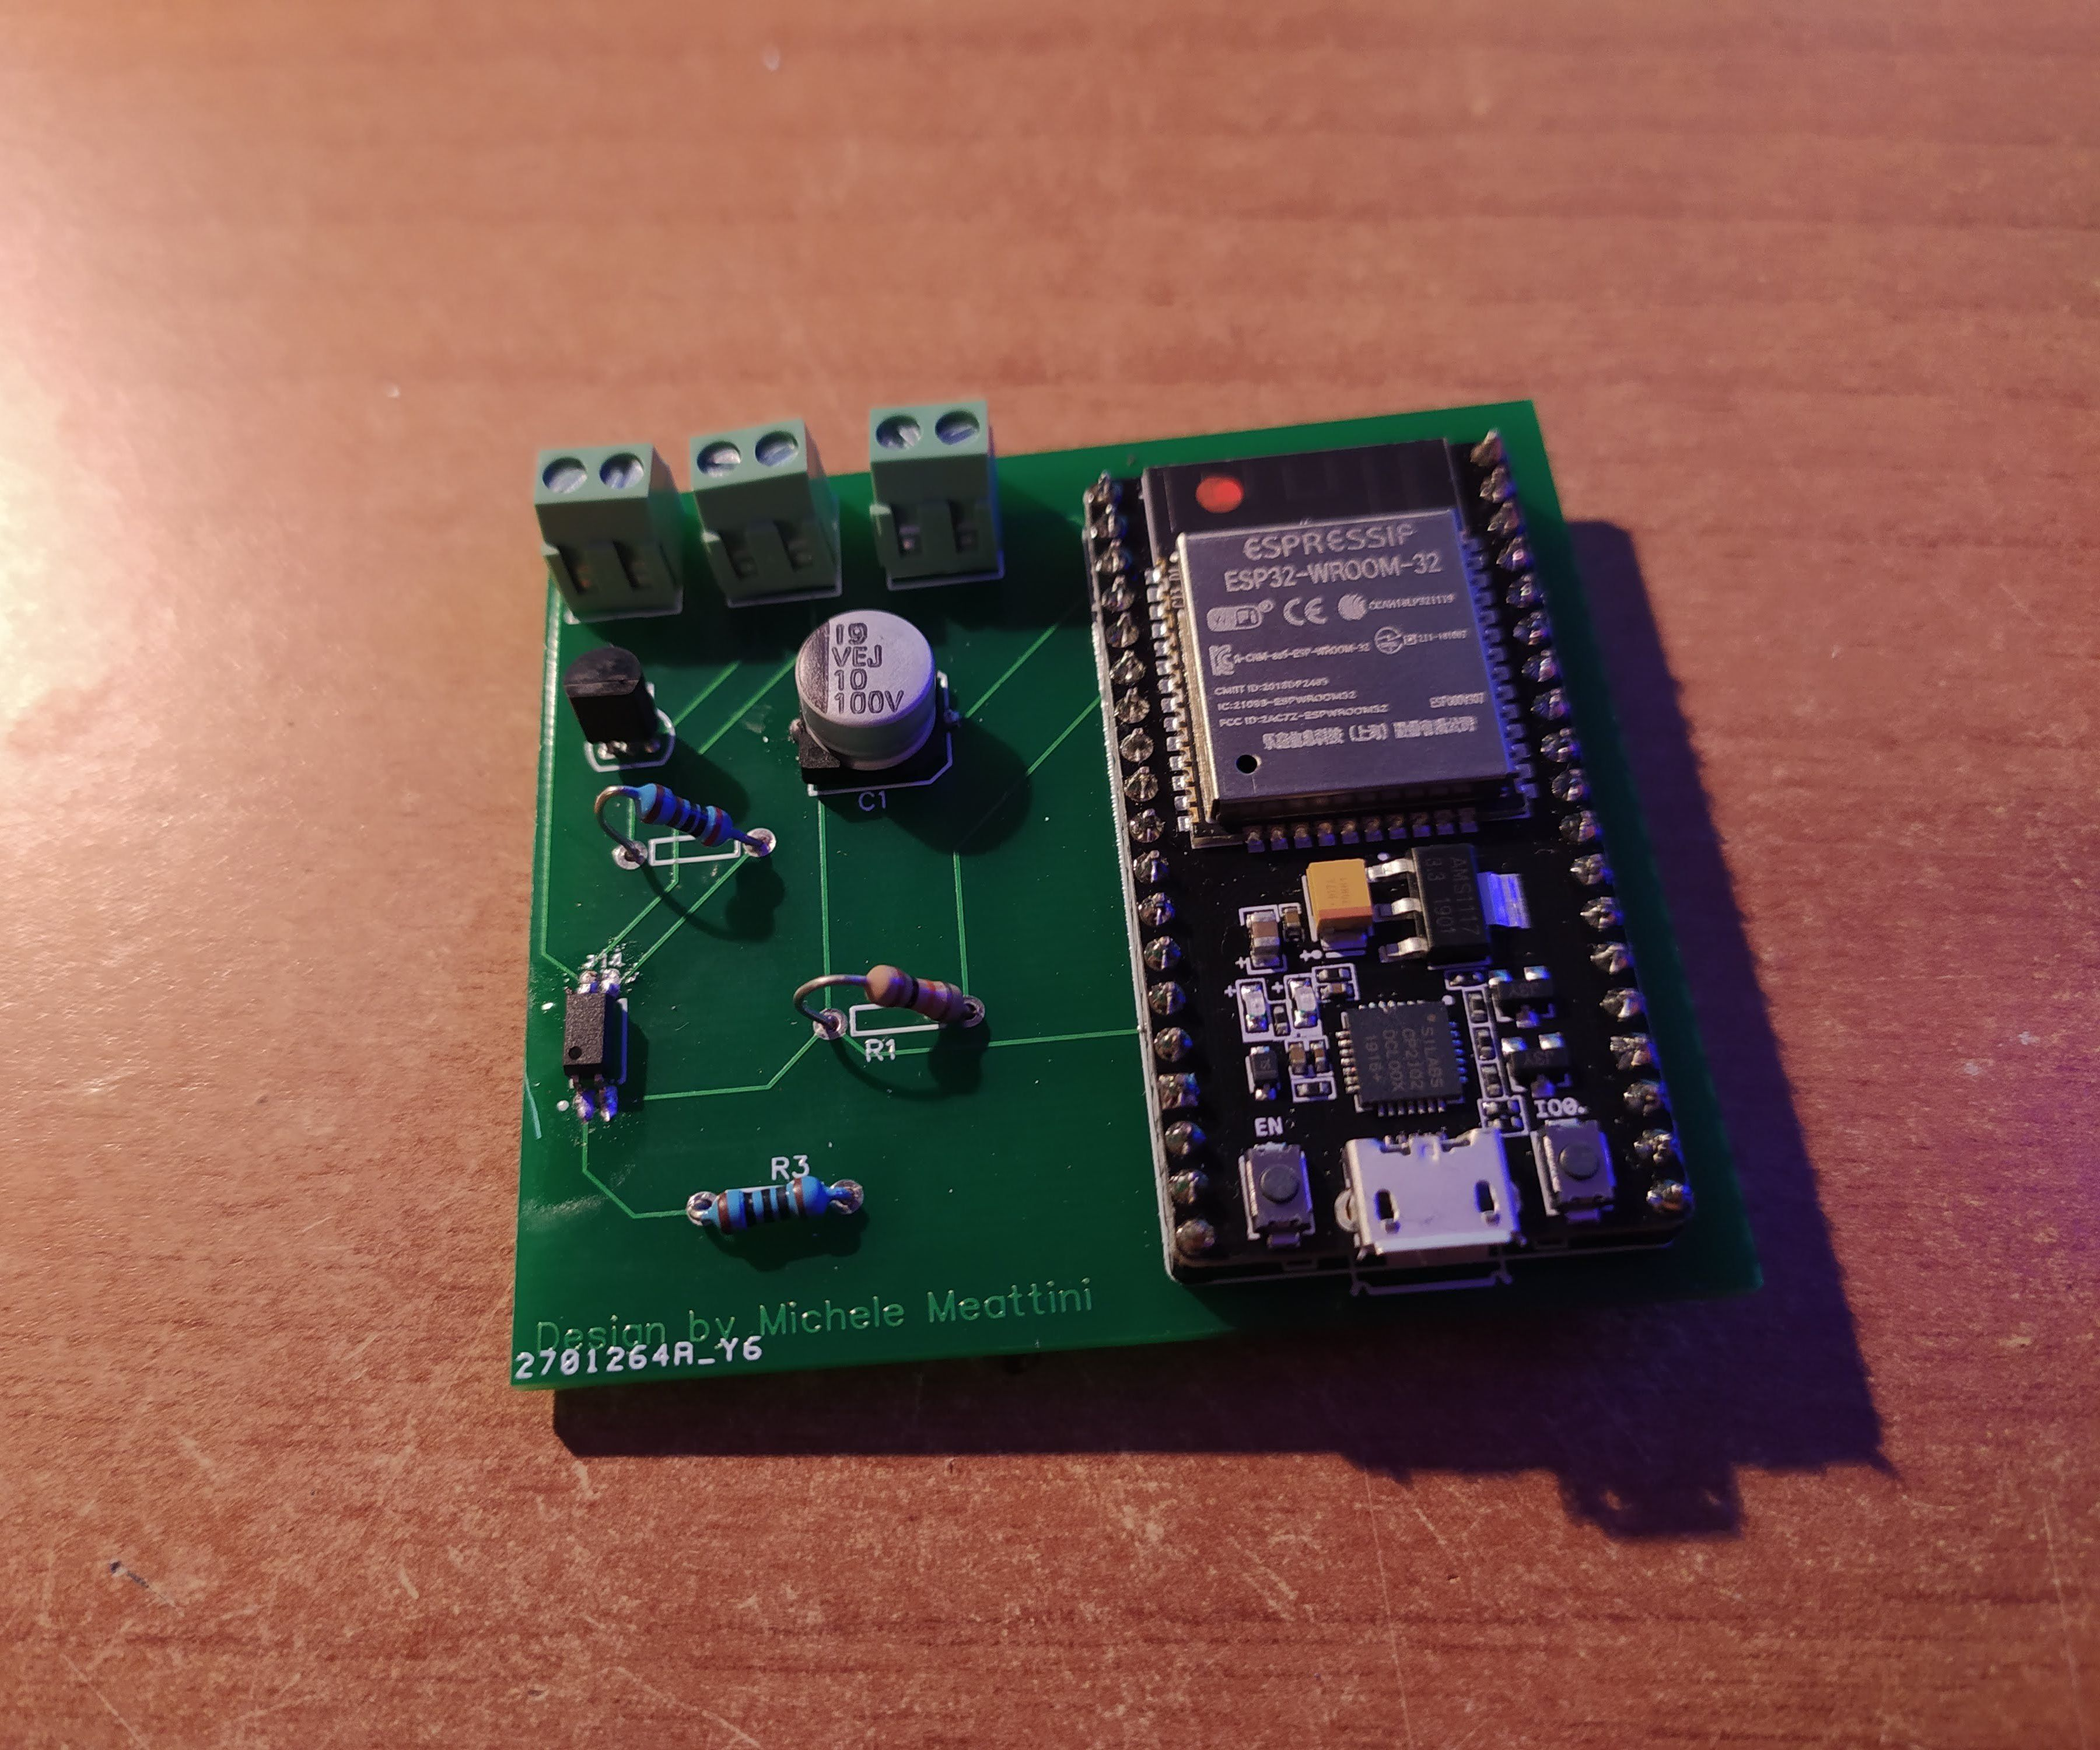 How to Make a Smart Pot With NodeMCU Controlled by App